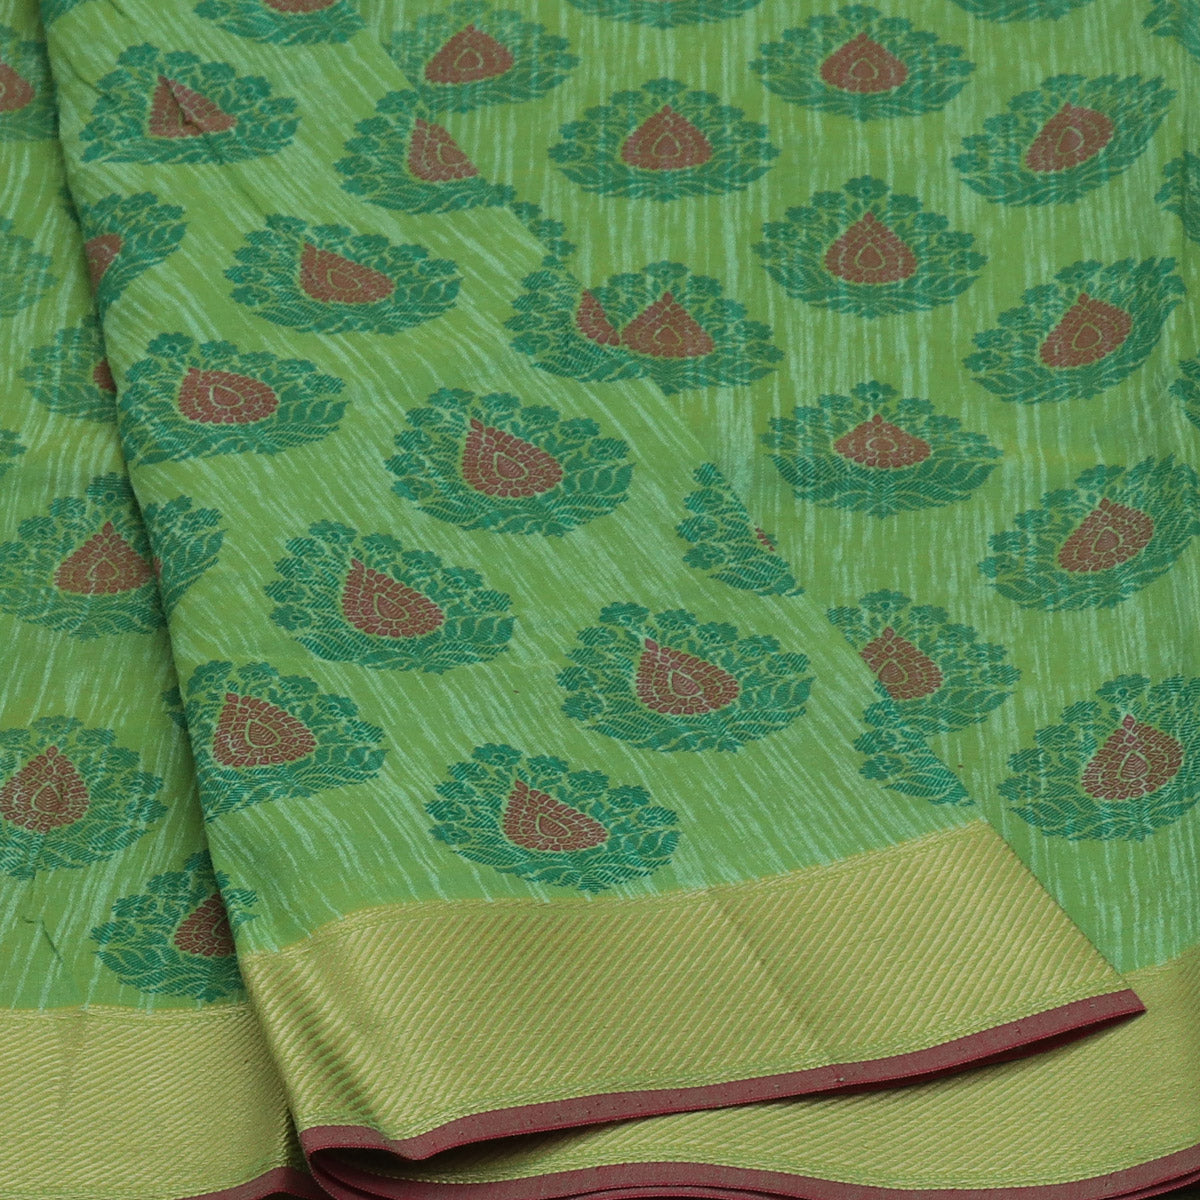 Chanderi Cotton Saree Green Shade with zari border